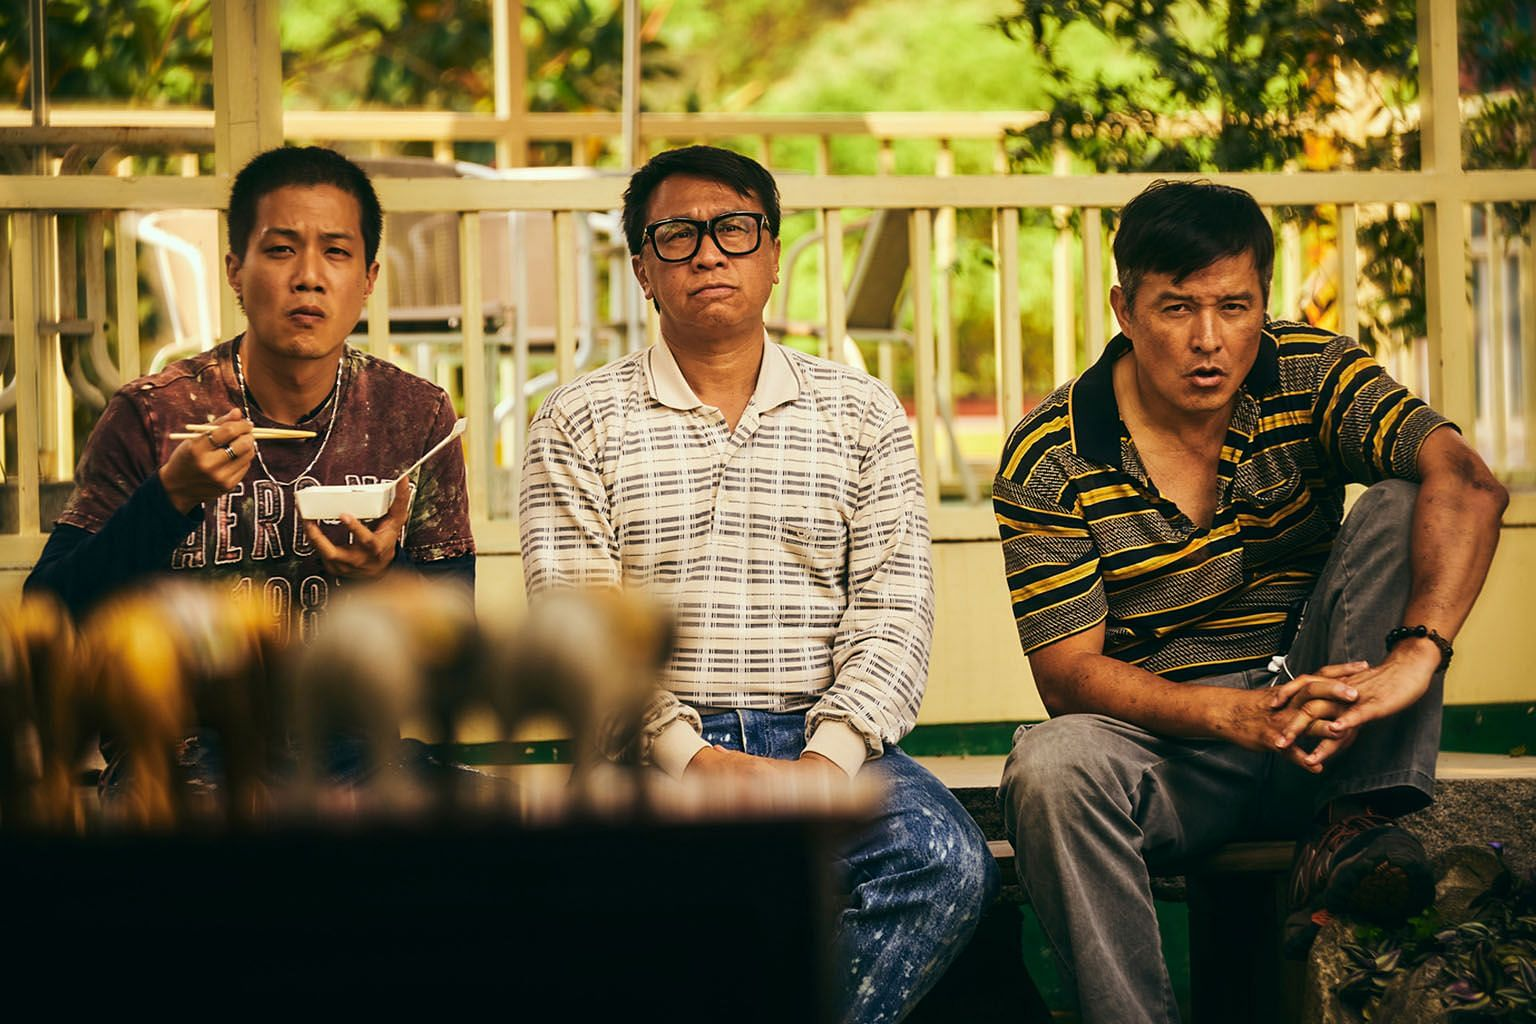 ((Above) In Workers, (from far left) Hsueh Shih-ling, Yu An-shun and Christopher Lee play buddies who come up with get-rich-quick schemes.